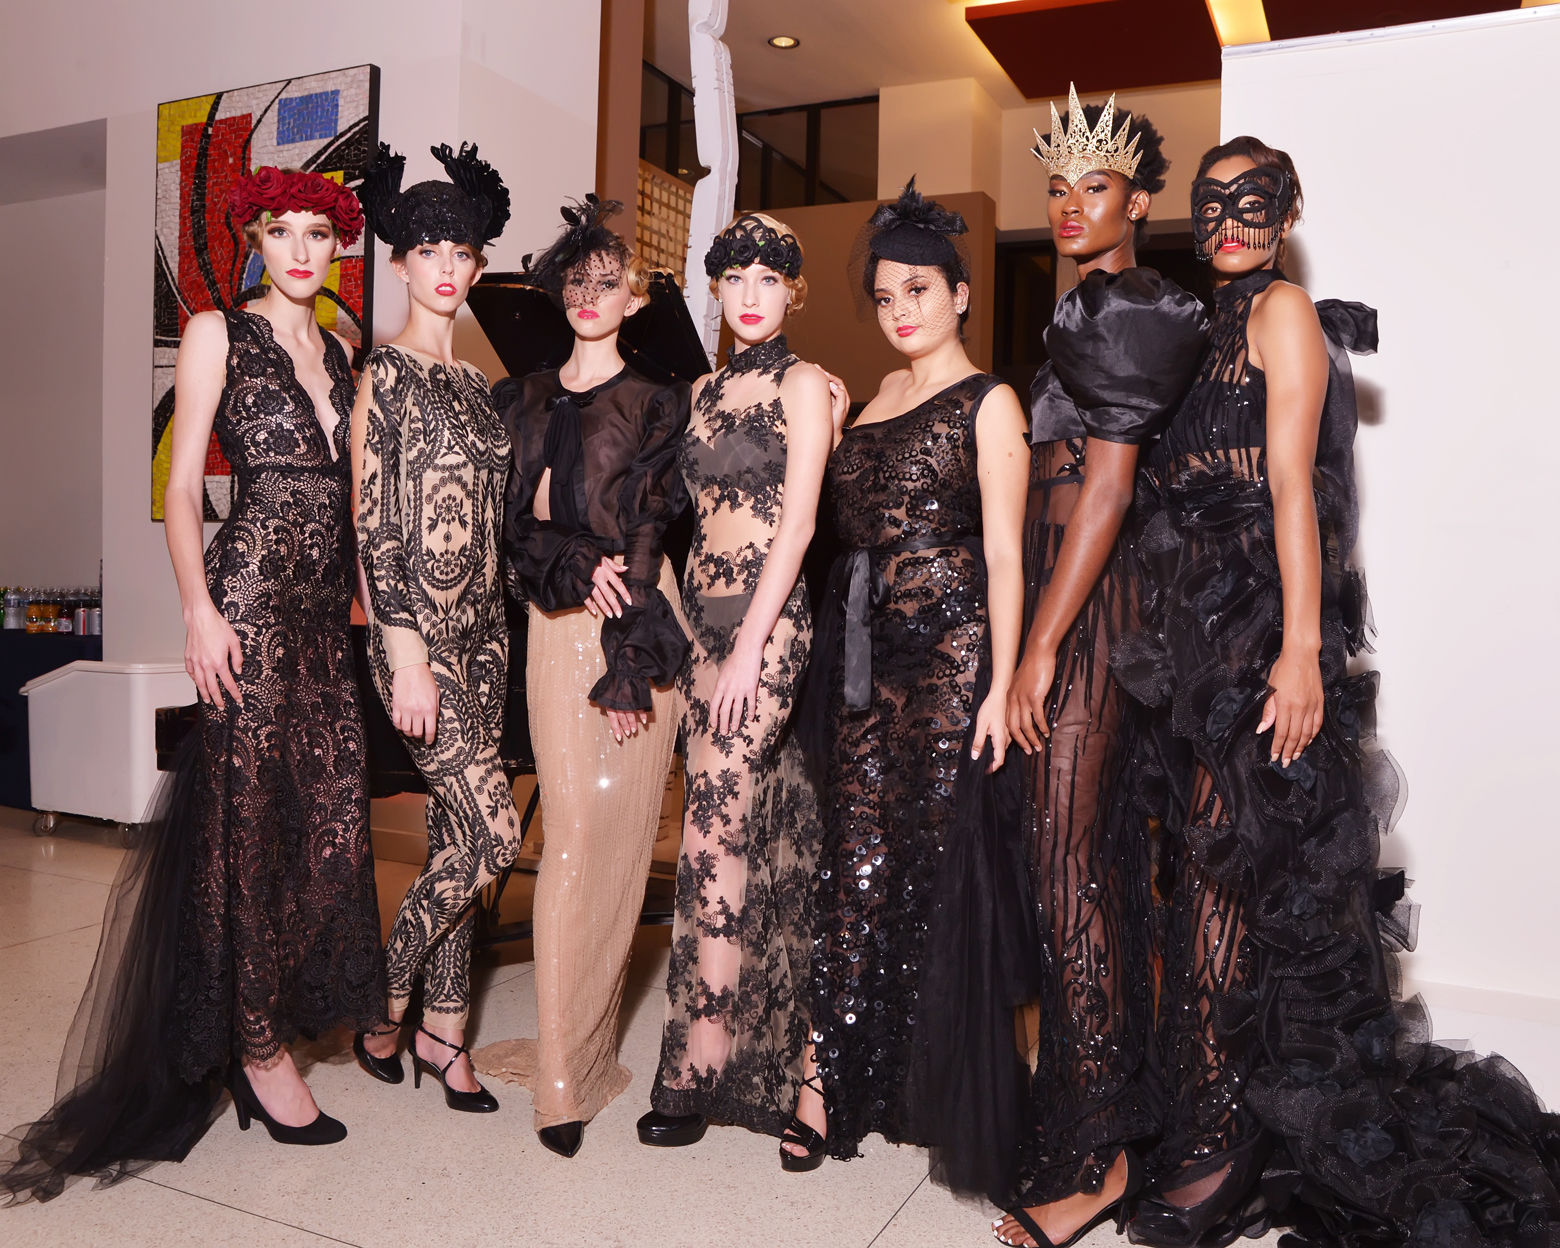 Models pose in dresses by Washington, DC-based designer Ean Williams following the runway show at DC Fashion Week's 2018 International Couture Collections at the Embassy of France. (Shannon Finney Photography)